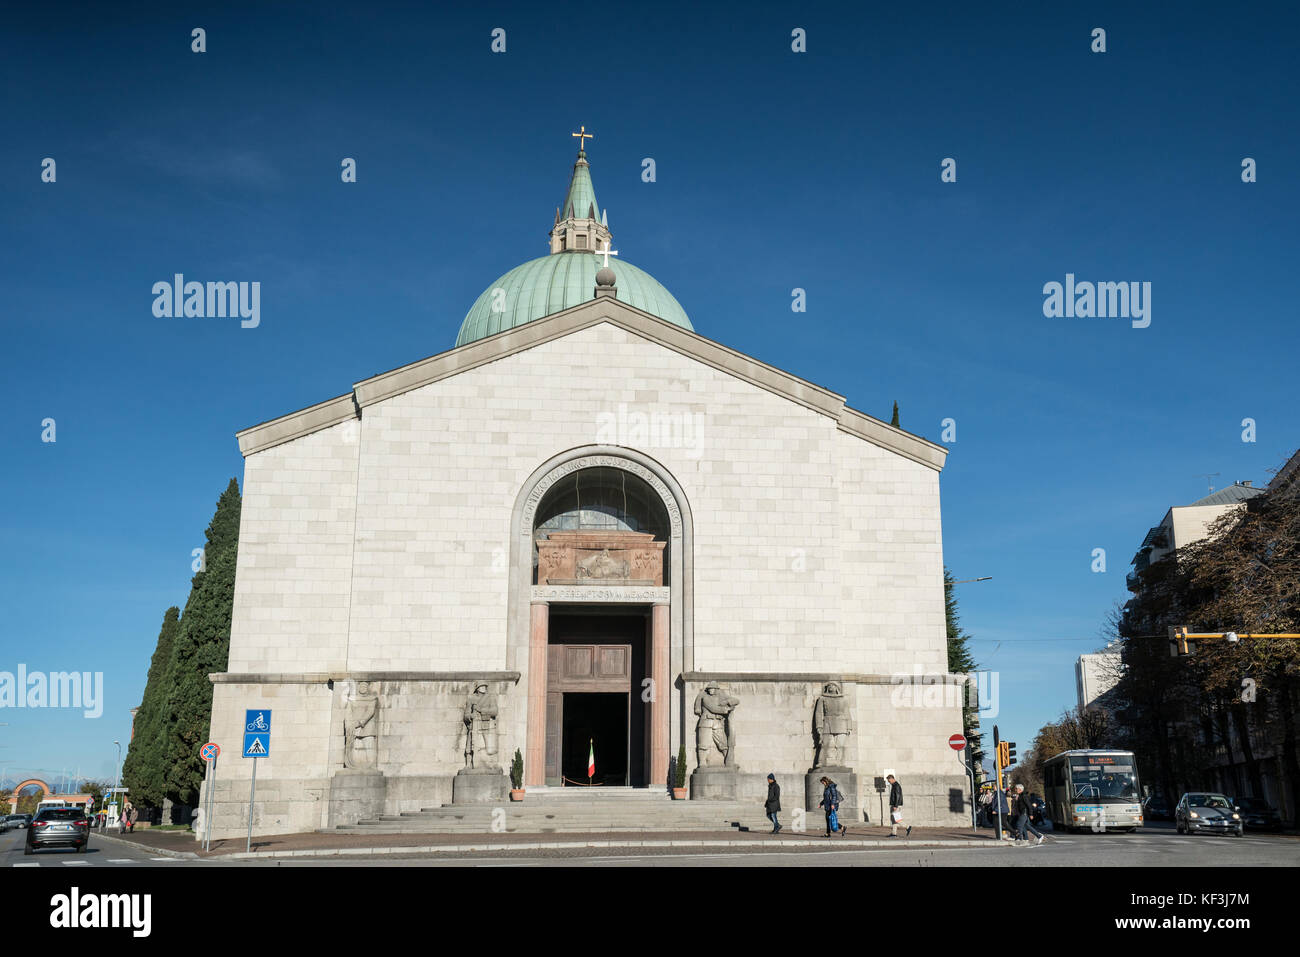 the ossuary temple in Udine - Stock Image